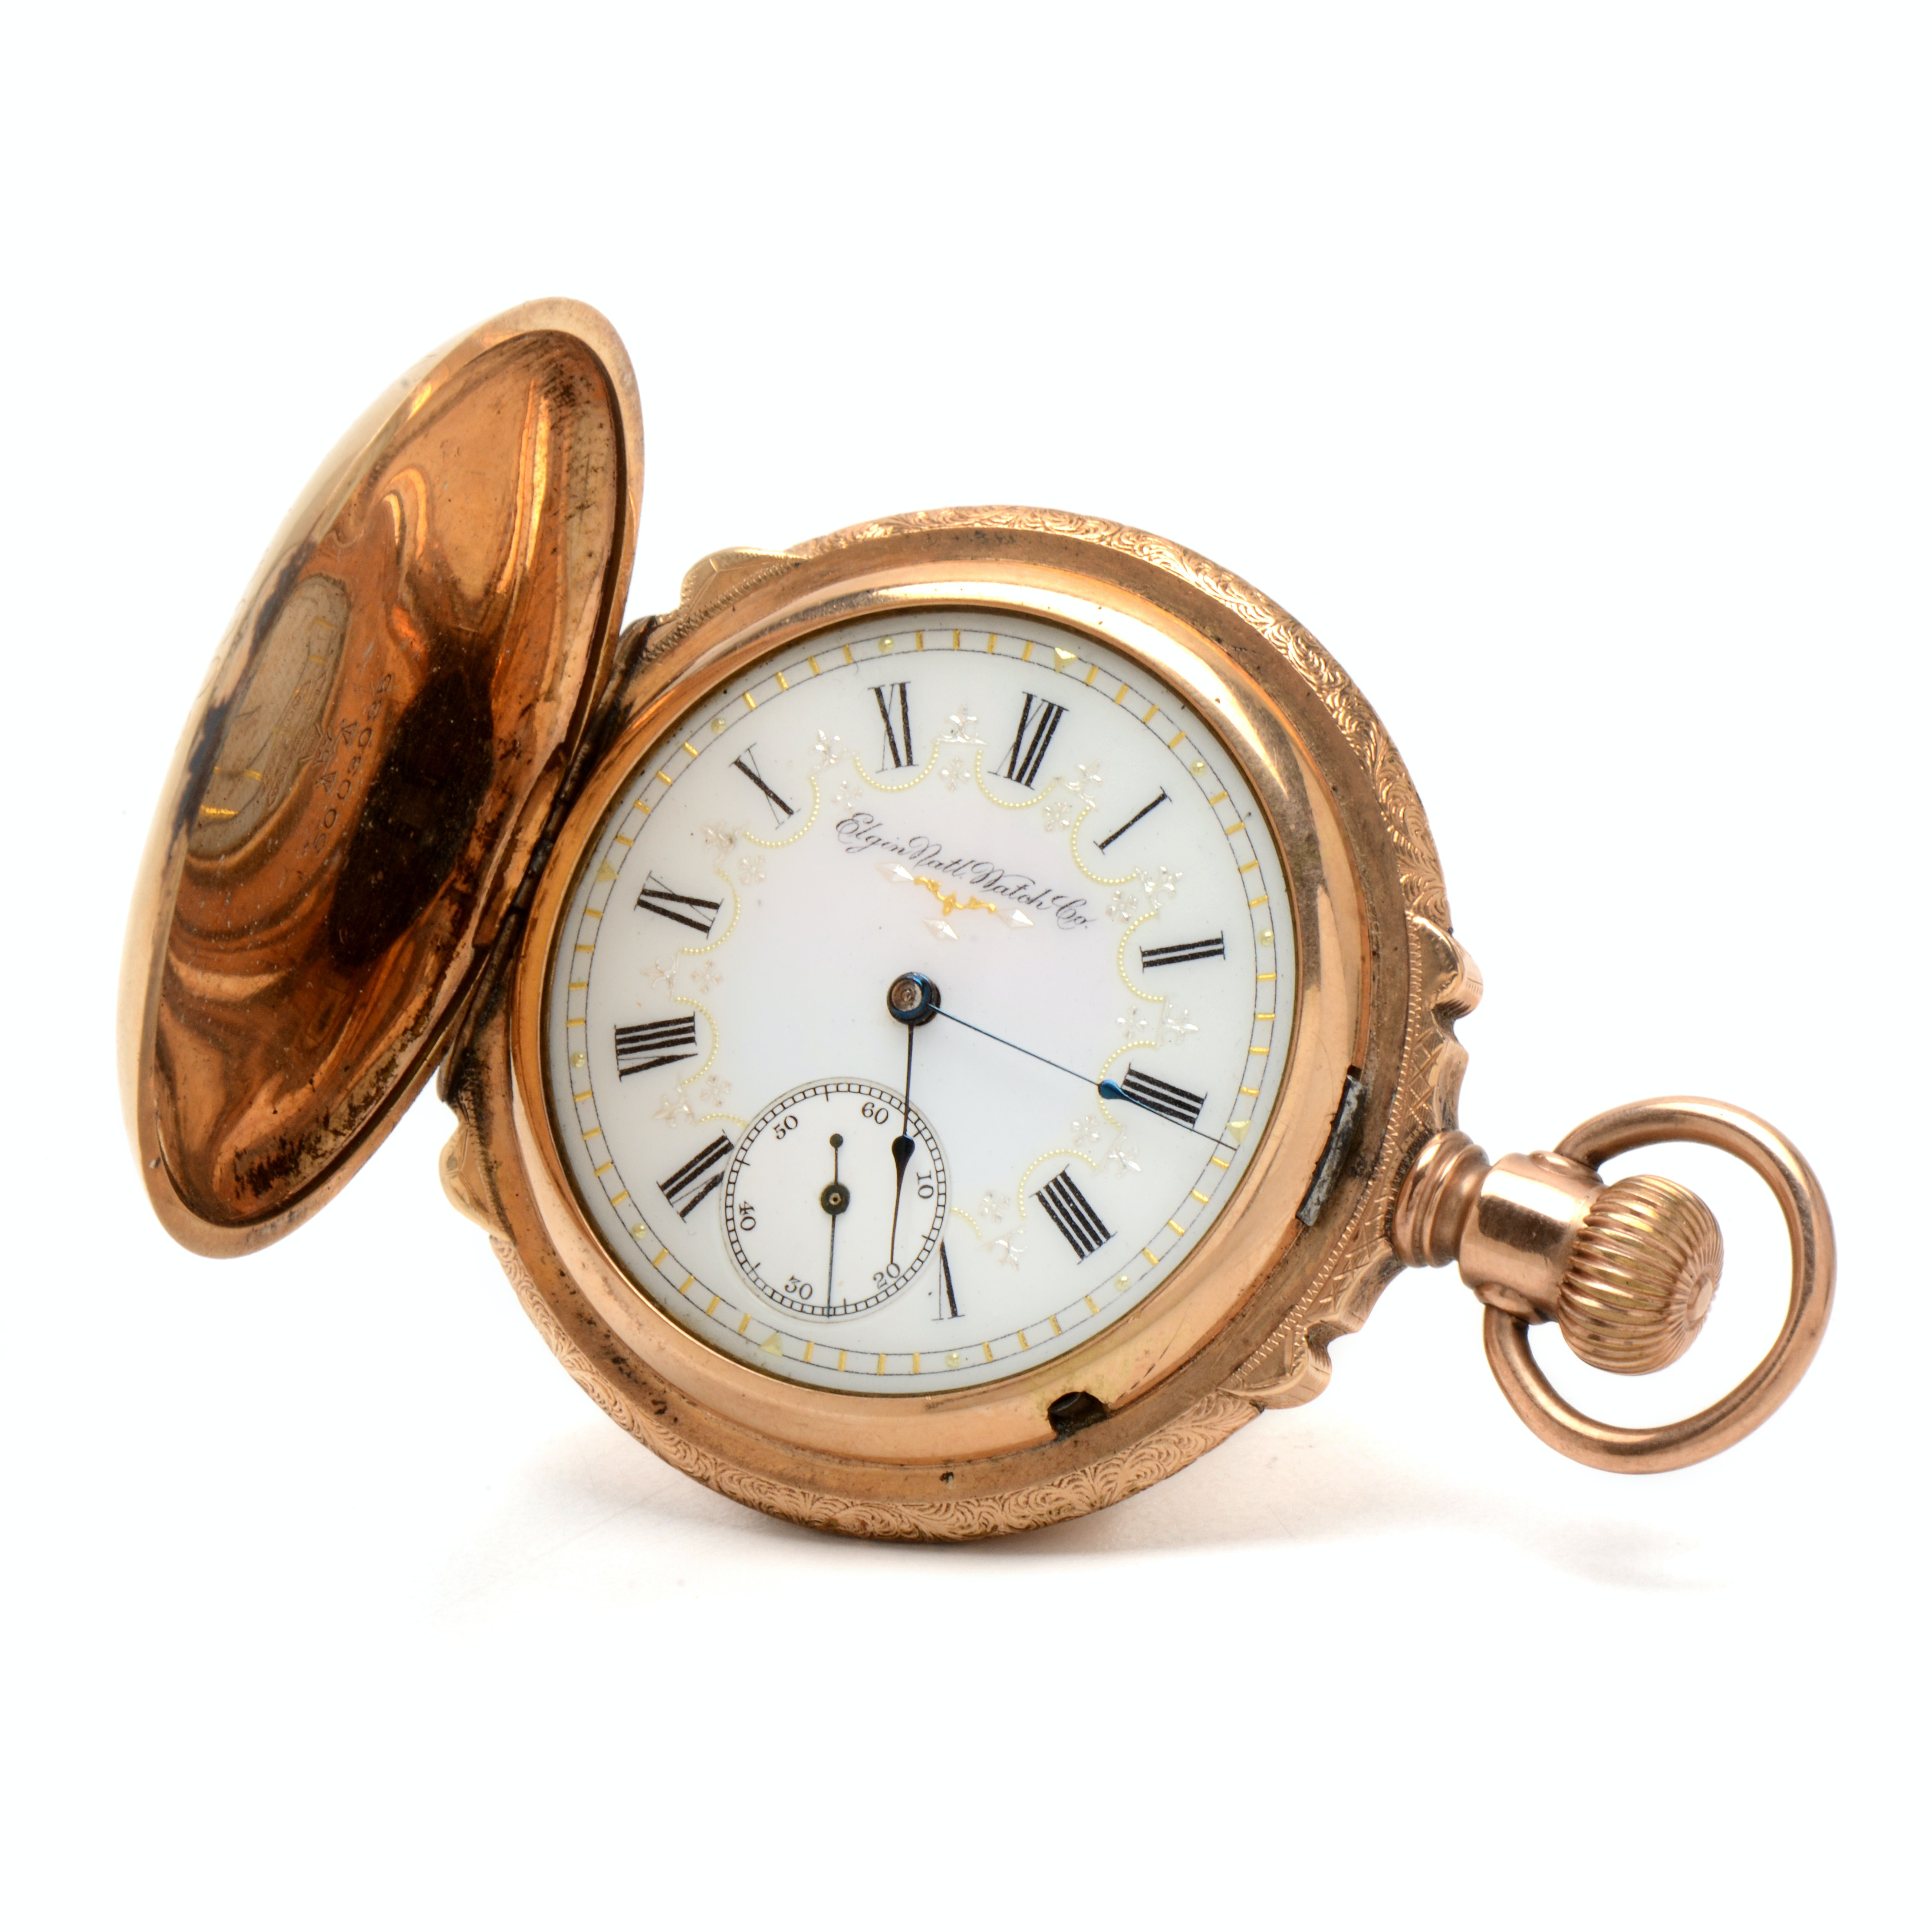 Antique Gold Filled Box Hinged Hunting Case Pocket Watch